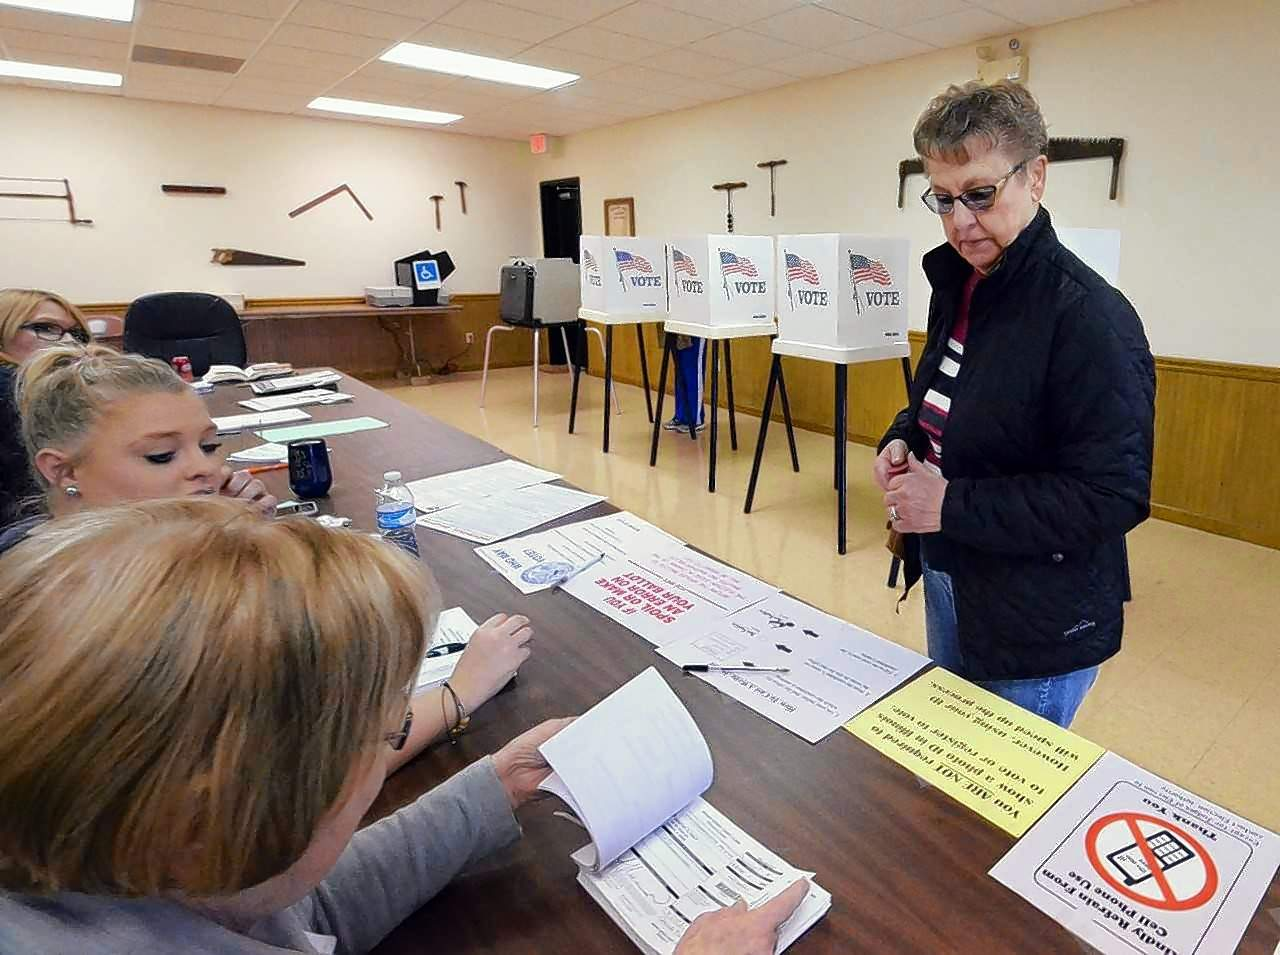 Marion resident Mary Nall was among those who turned up at the polling places Tuesday to cast her ballot in the low turnout election. She voted in West Marion 10 precinct.